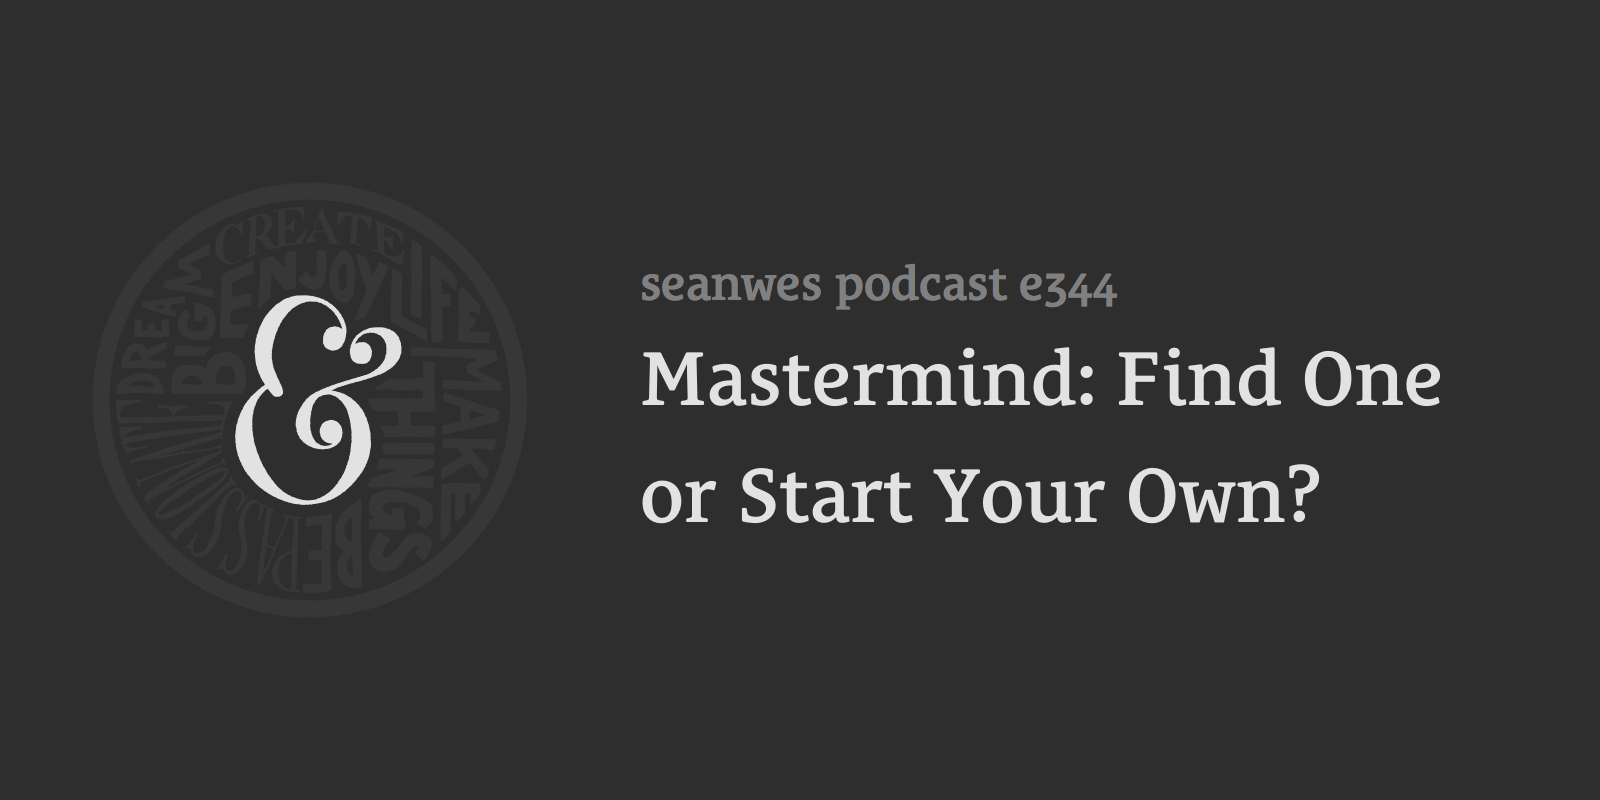 Mastermind: Find One or Start Your Own?